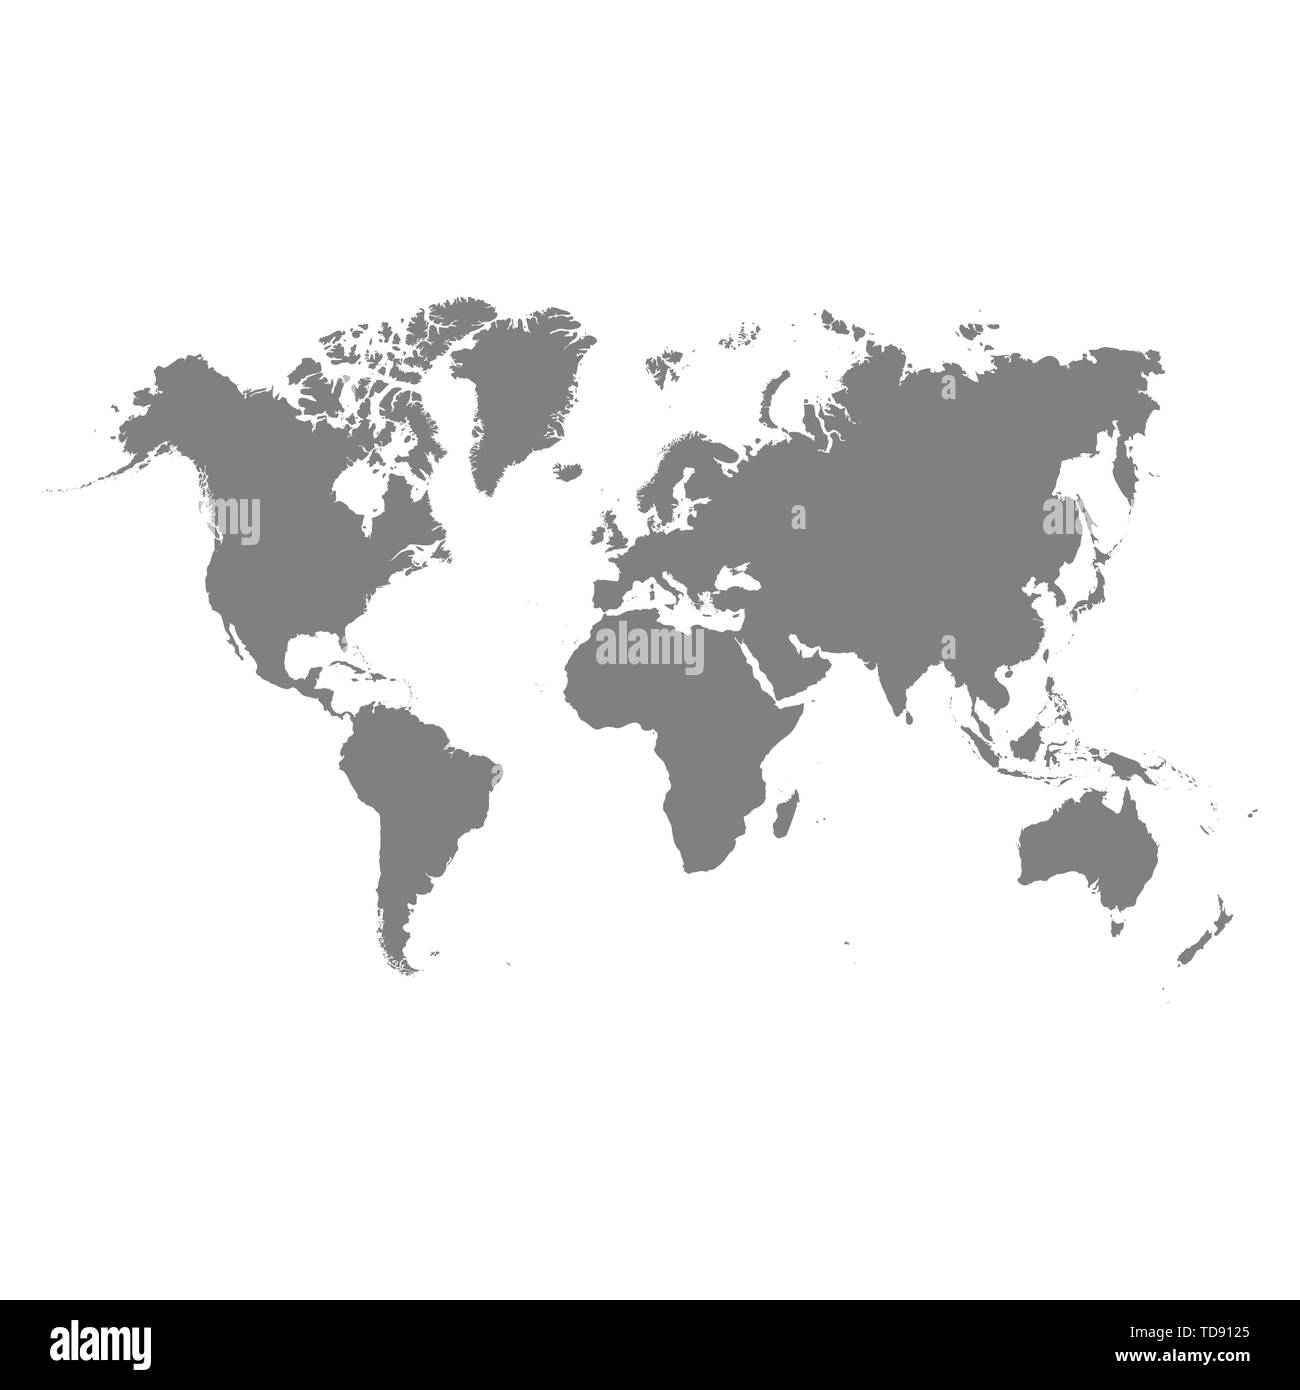 Vector world map isolated on white back - Stock Image